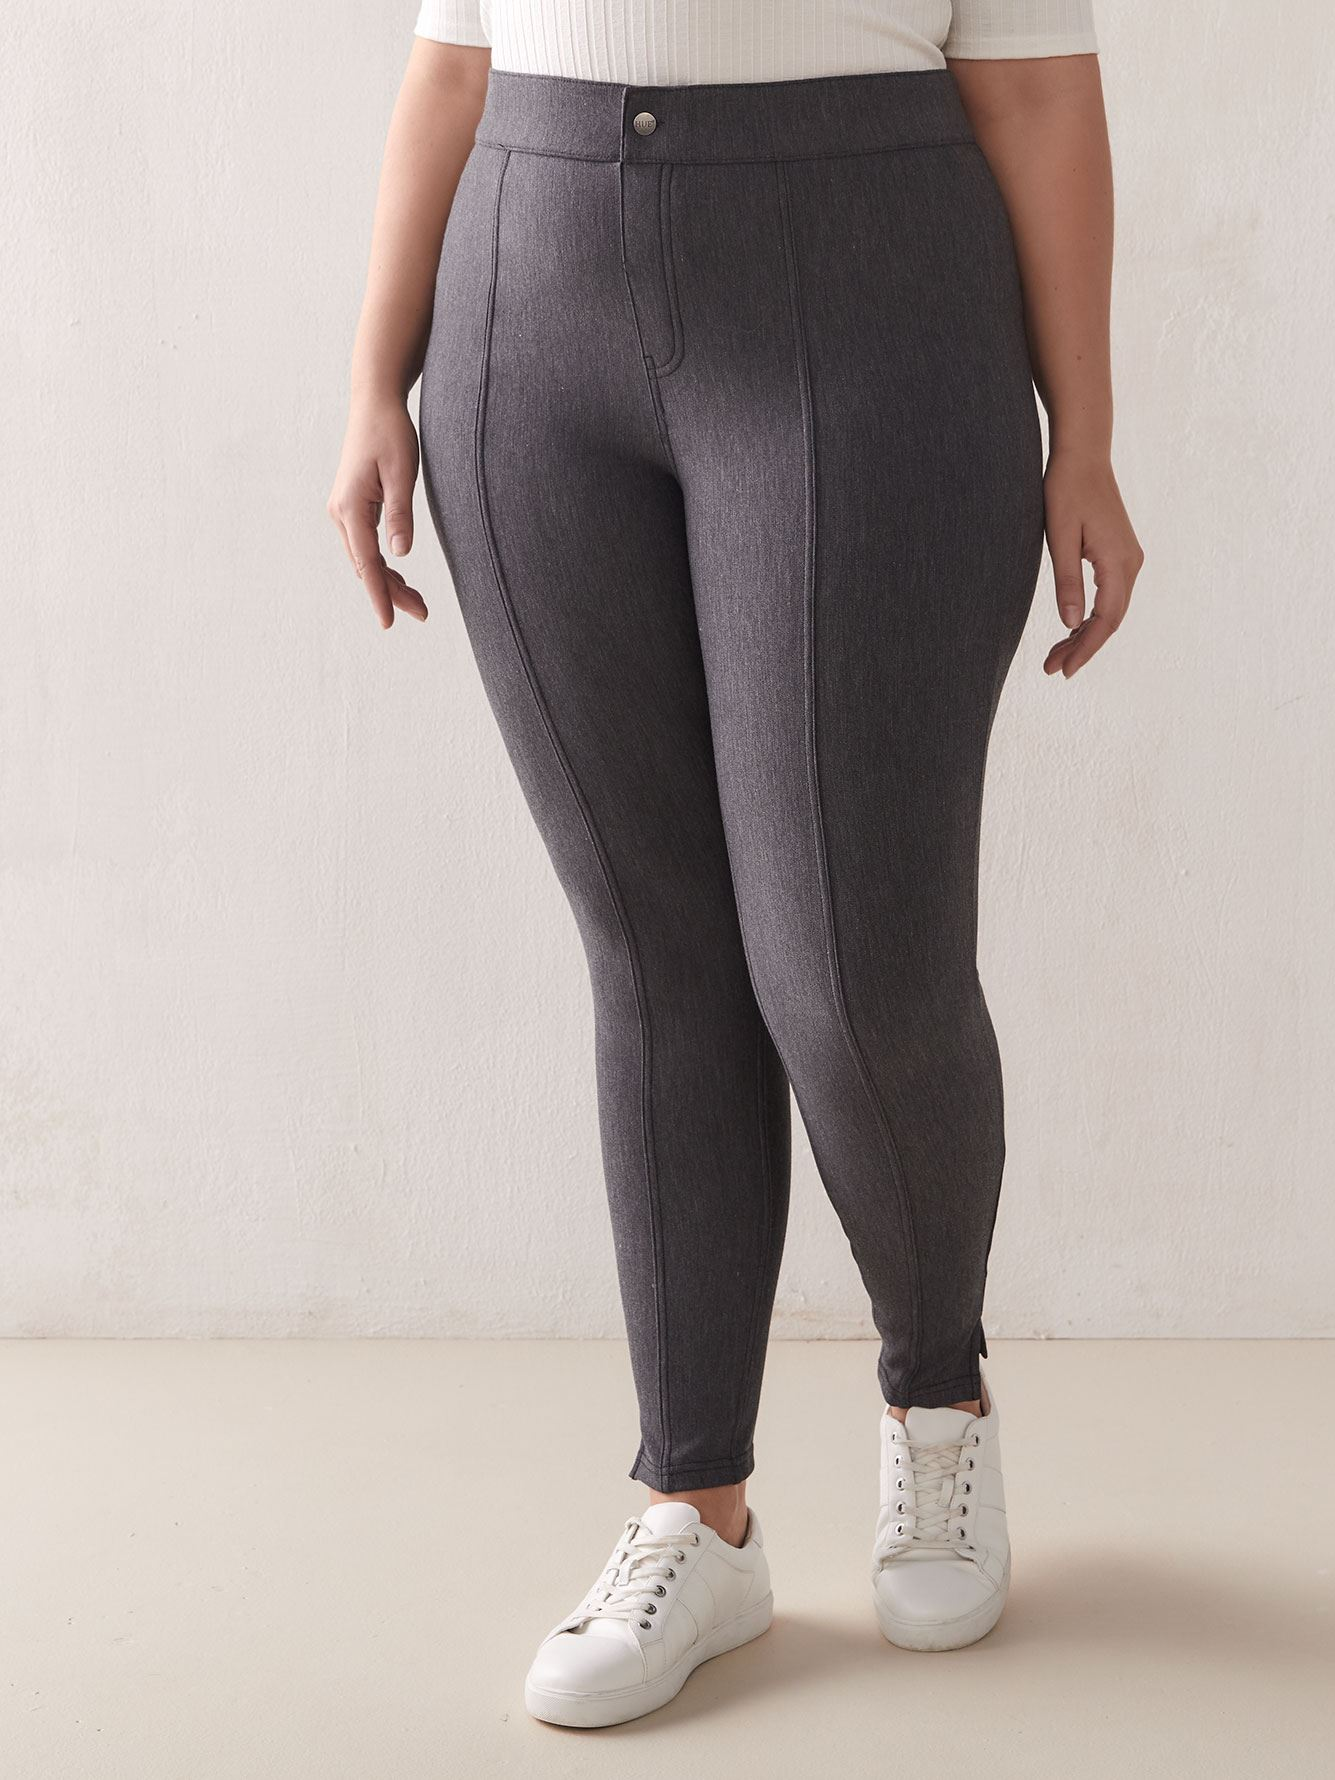 7/8 Pintucked Tweed Leggings - Hue